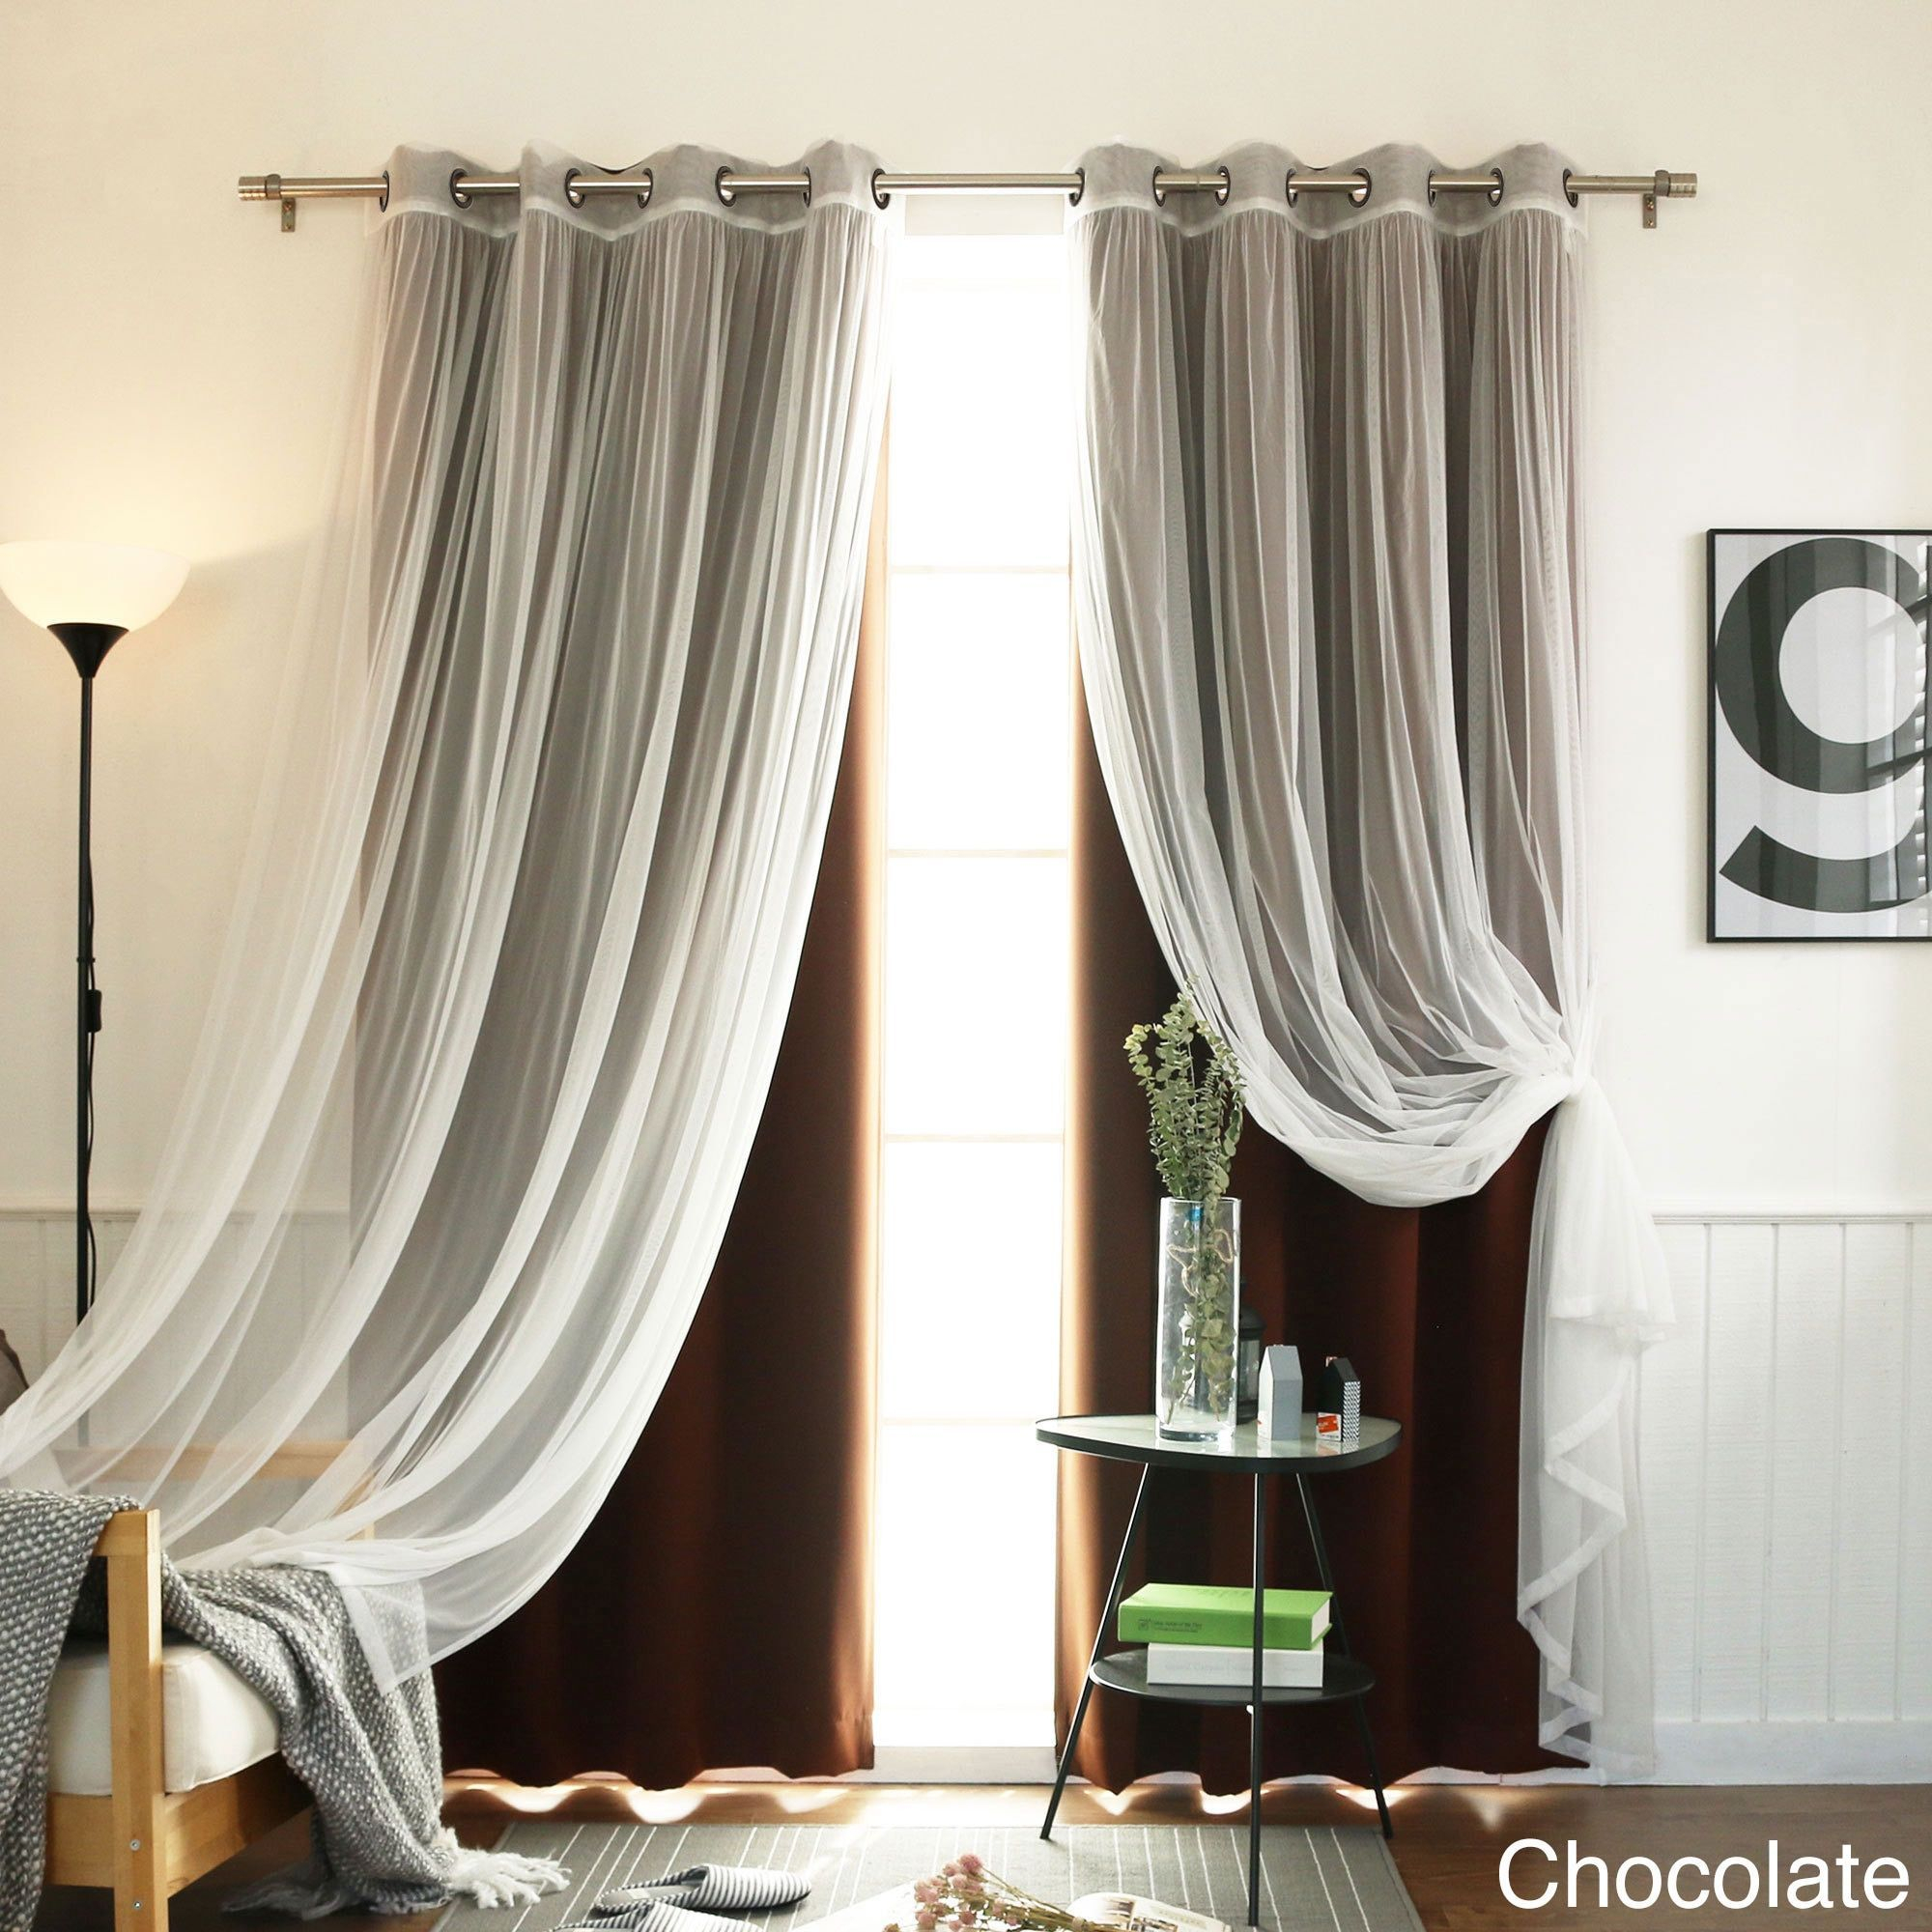 Aurora Home Mix & Match Blackout Tulle Lace Bronze Grommet 4 with regard to Mix & Match Blackout Tulle Lace Bronze Grommet Curtain Panel Sets (Image 8 of 20)